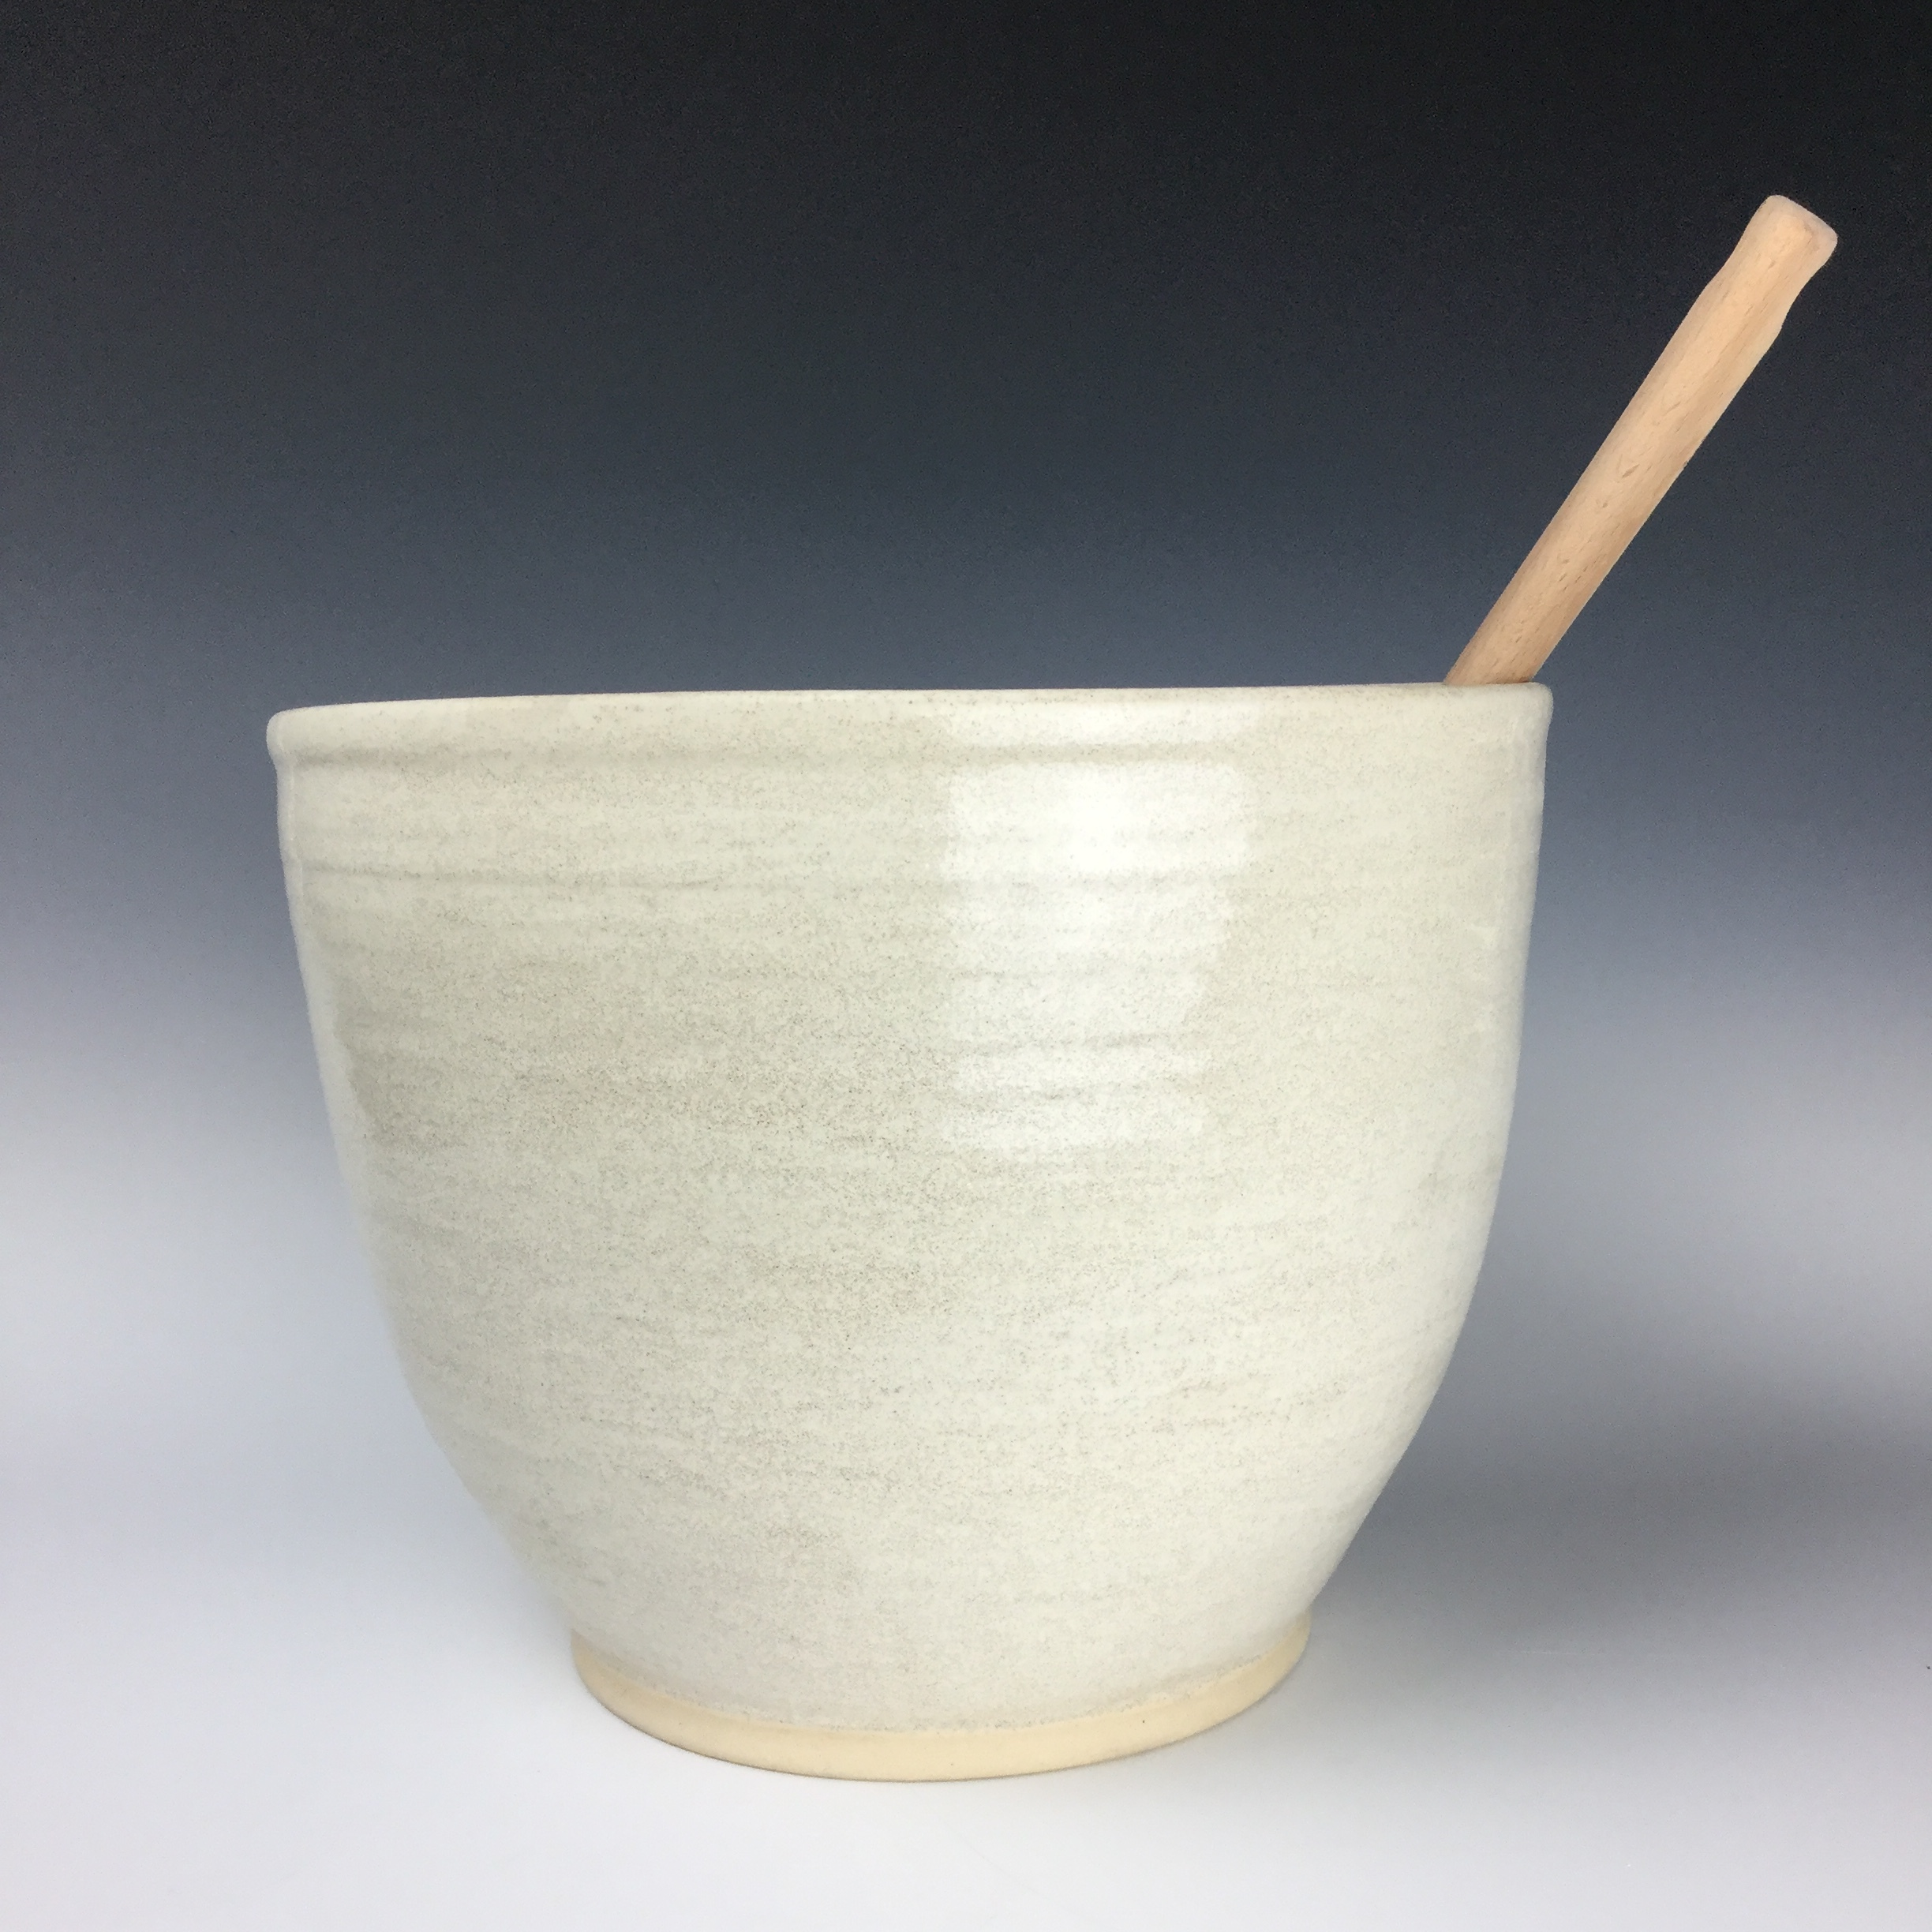 Wht Bowl w:handle side view.JPG